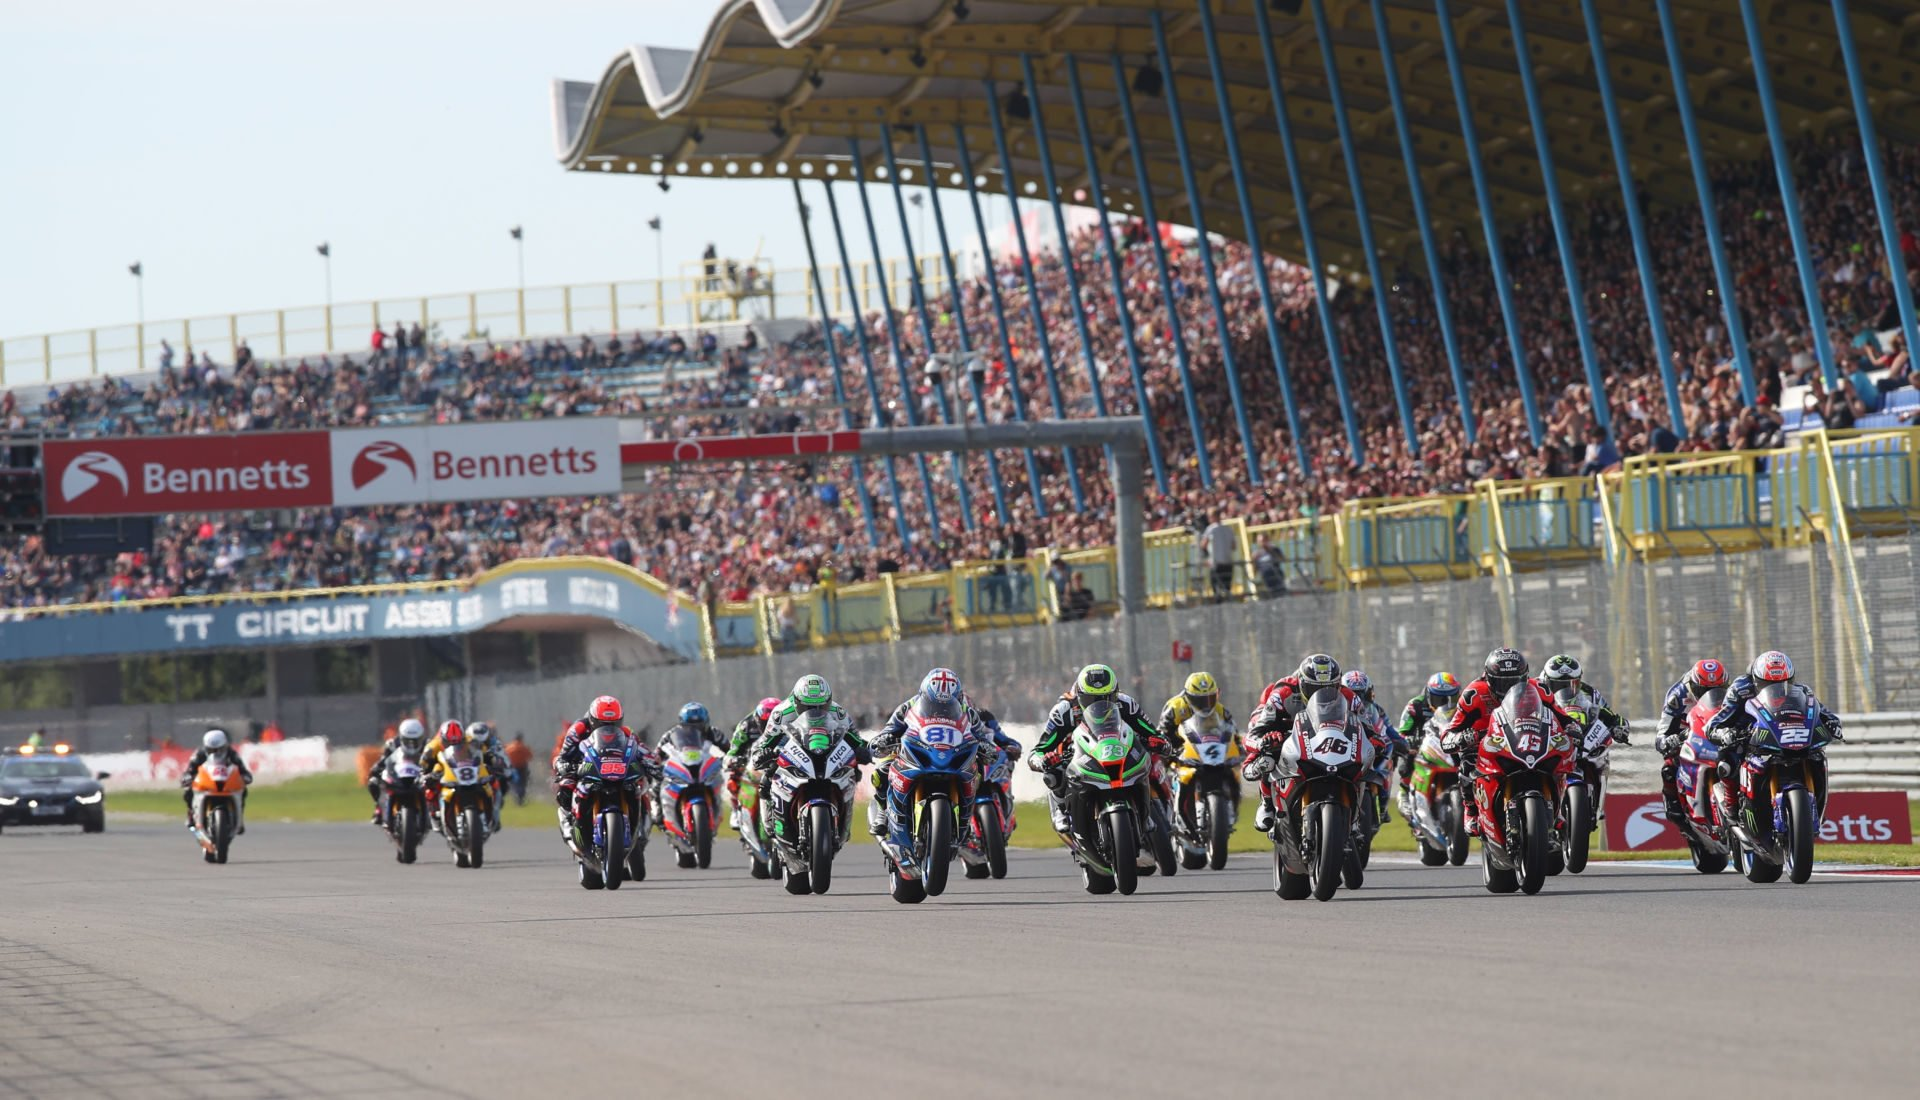 The start of a British Superbike race at Assen. Photo courtesy of MotorSport Vision Racing.